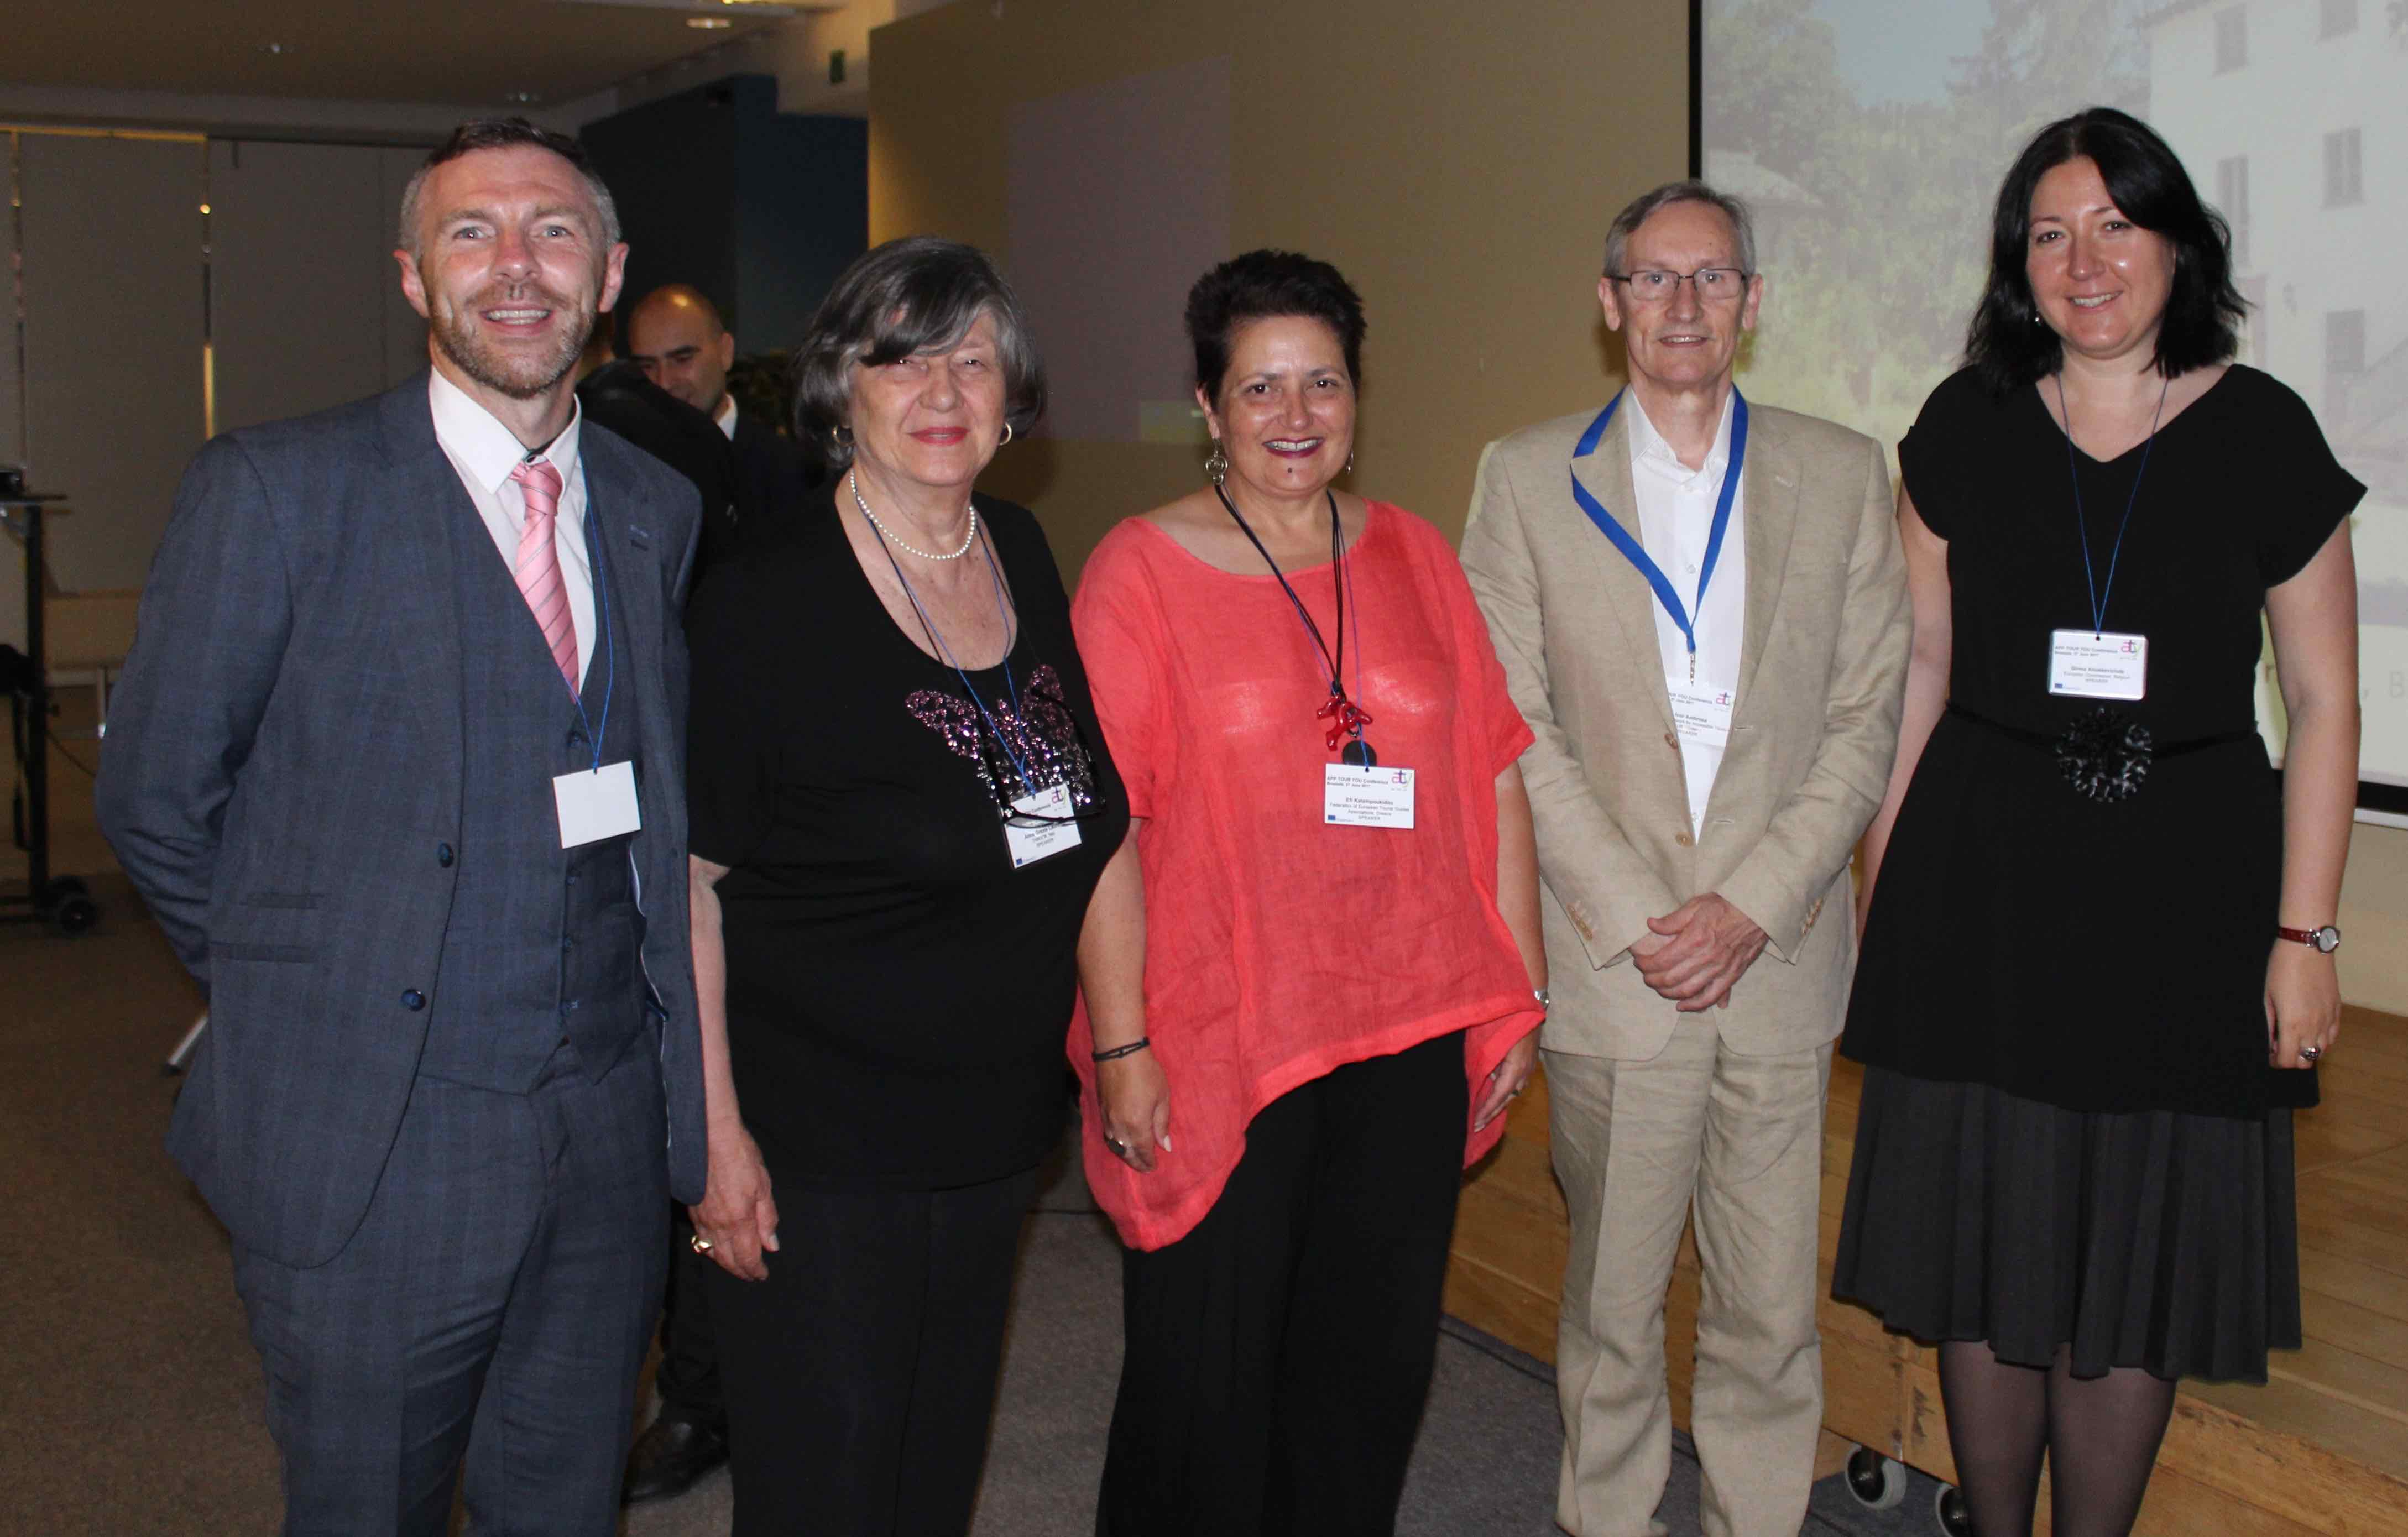 Image of delegates at Accessible Tourism Conference prior to Board Meeting